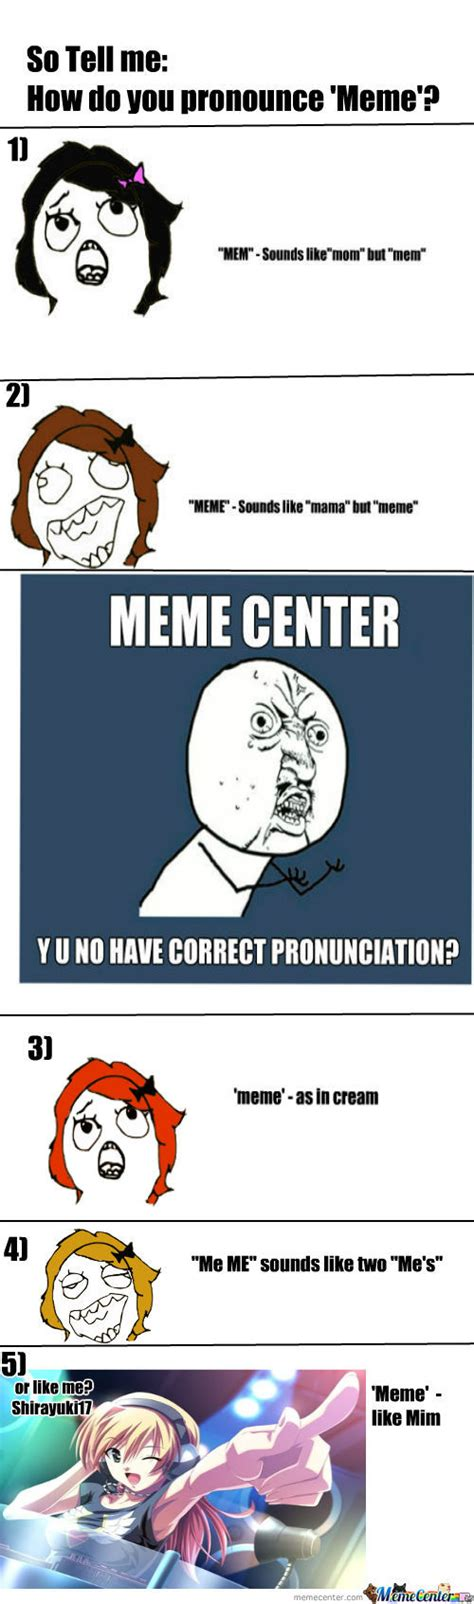 Meme How To Pronounce - meme pronounciation 28 images 25 best memes about pronounce meme pronounce memes loves